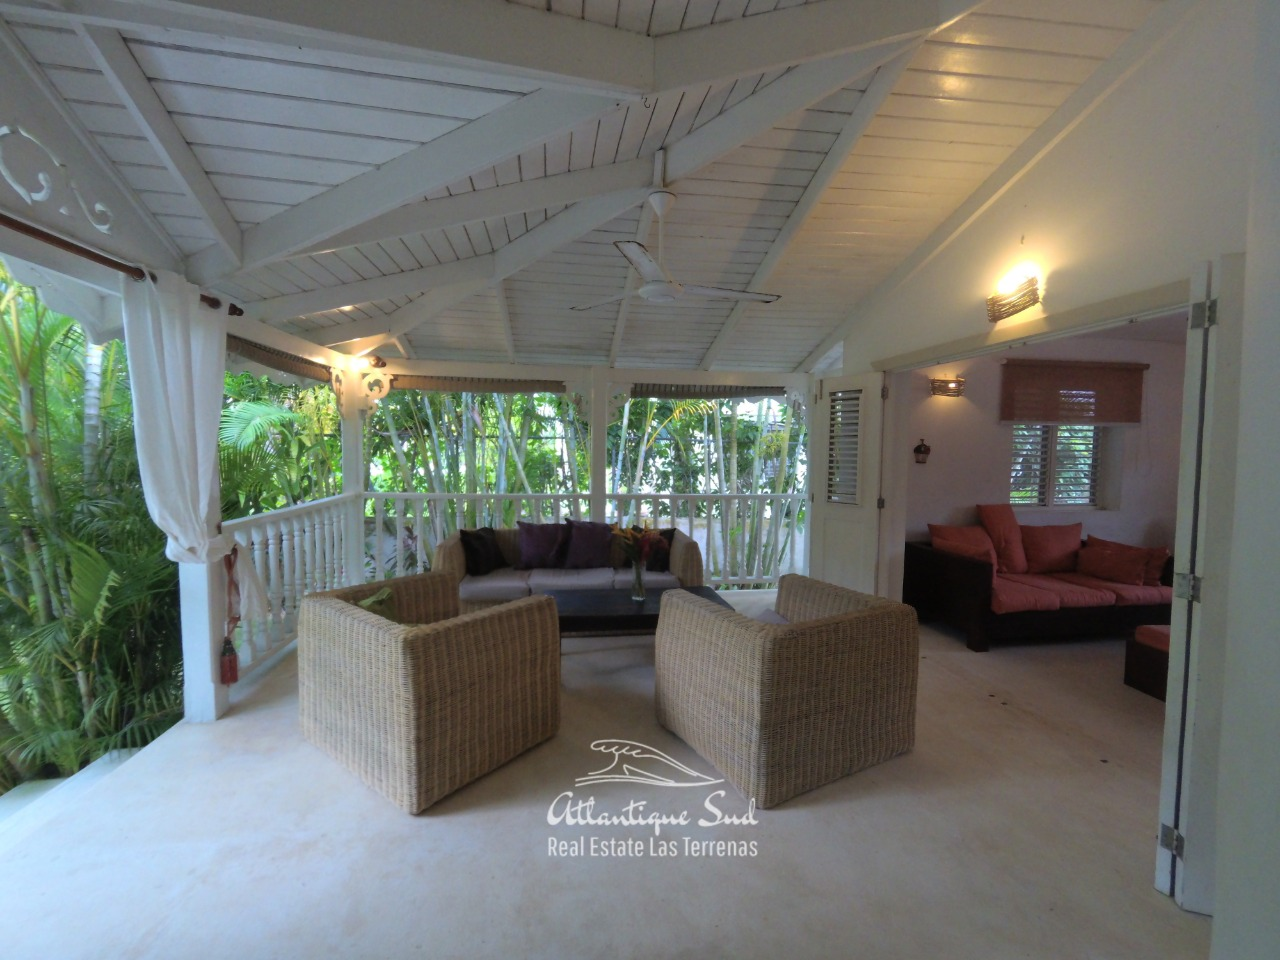 Villa for sale steps from the beach in las terrenas 11.jpeg